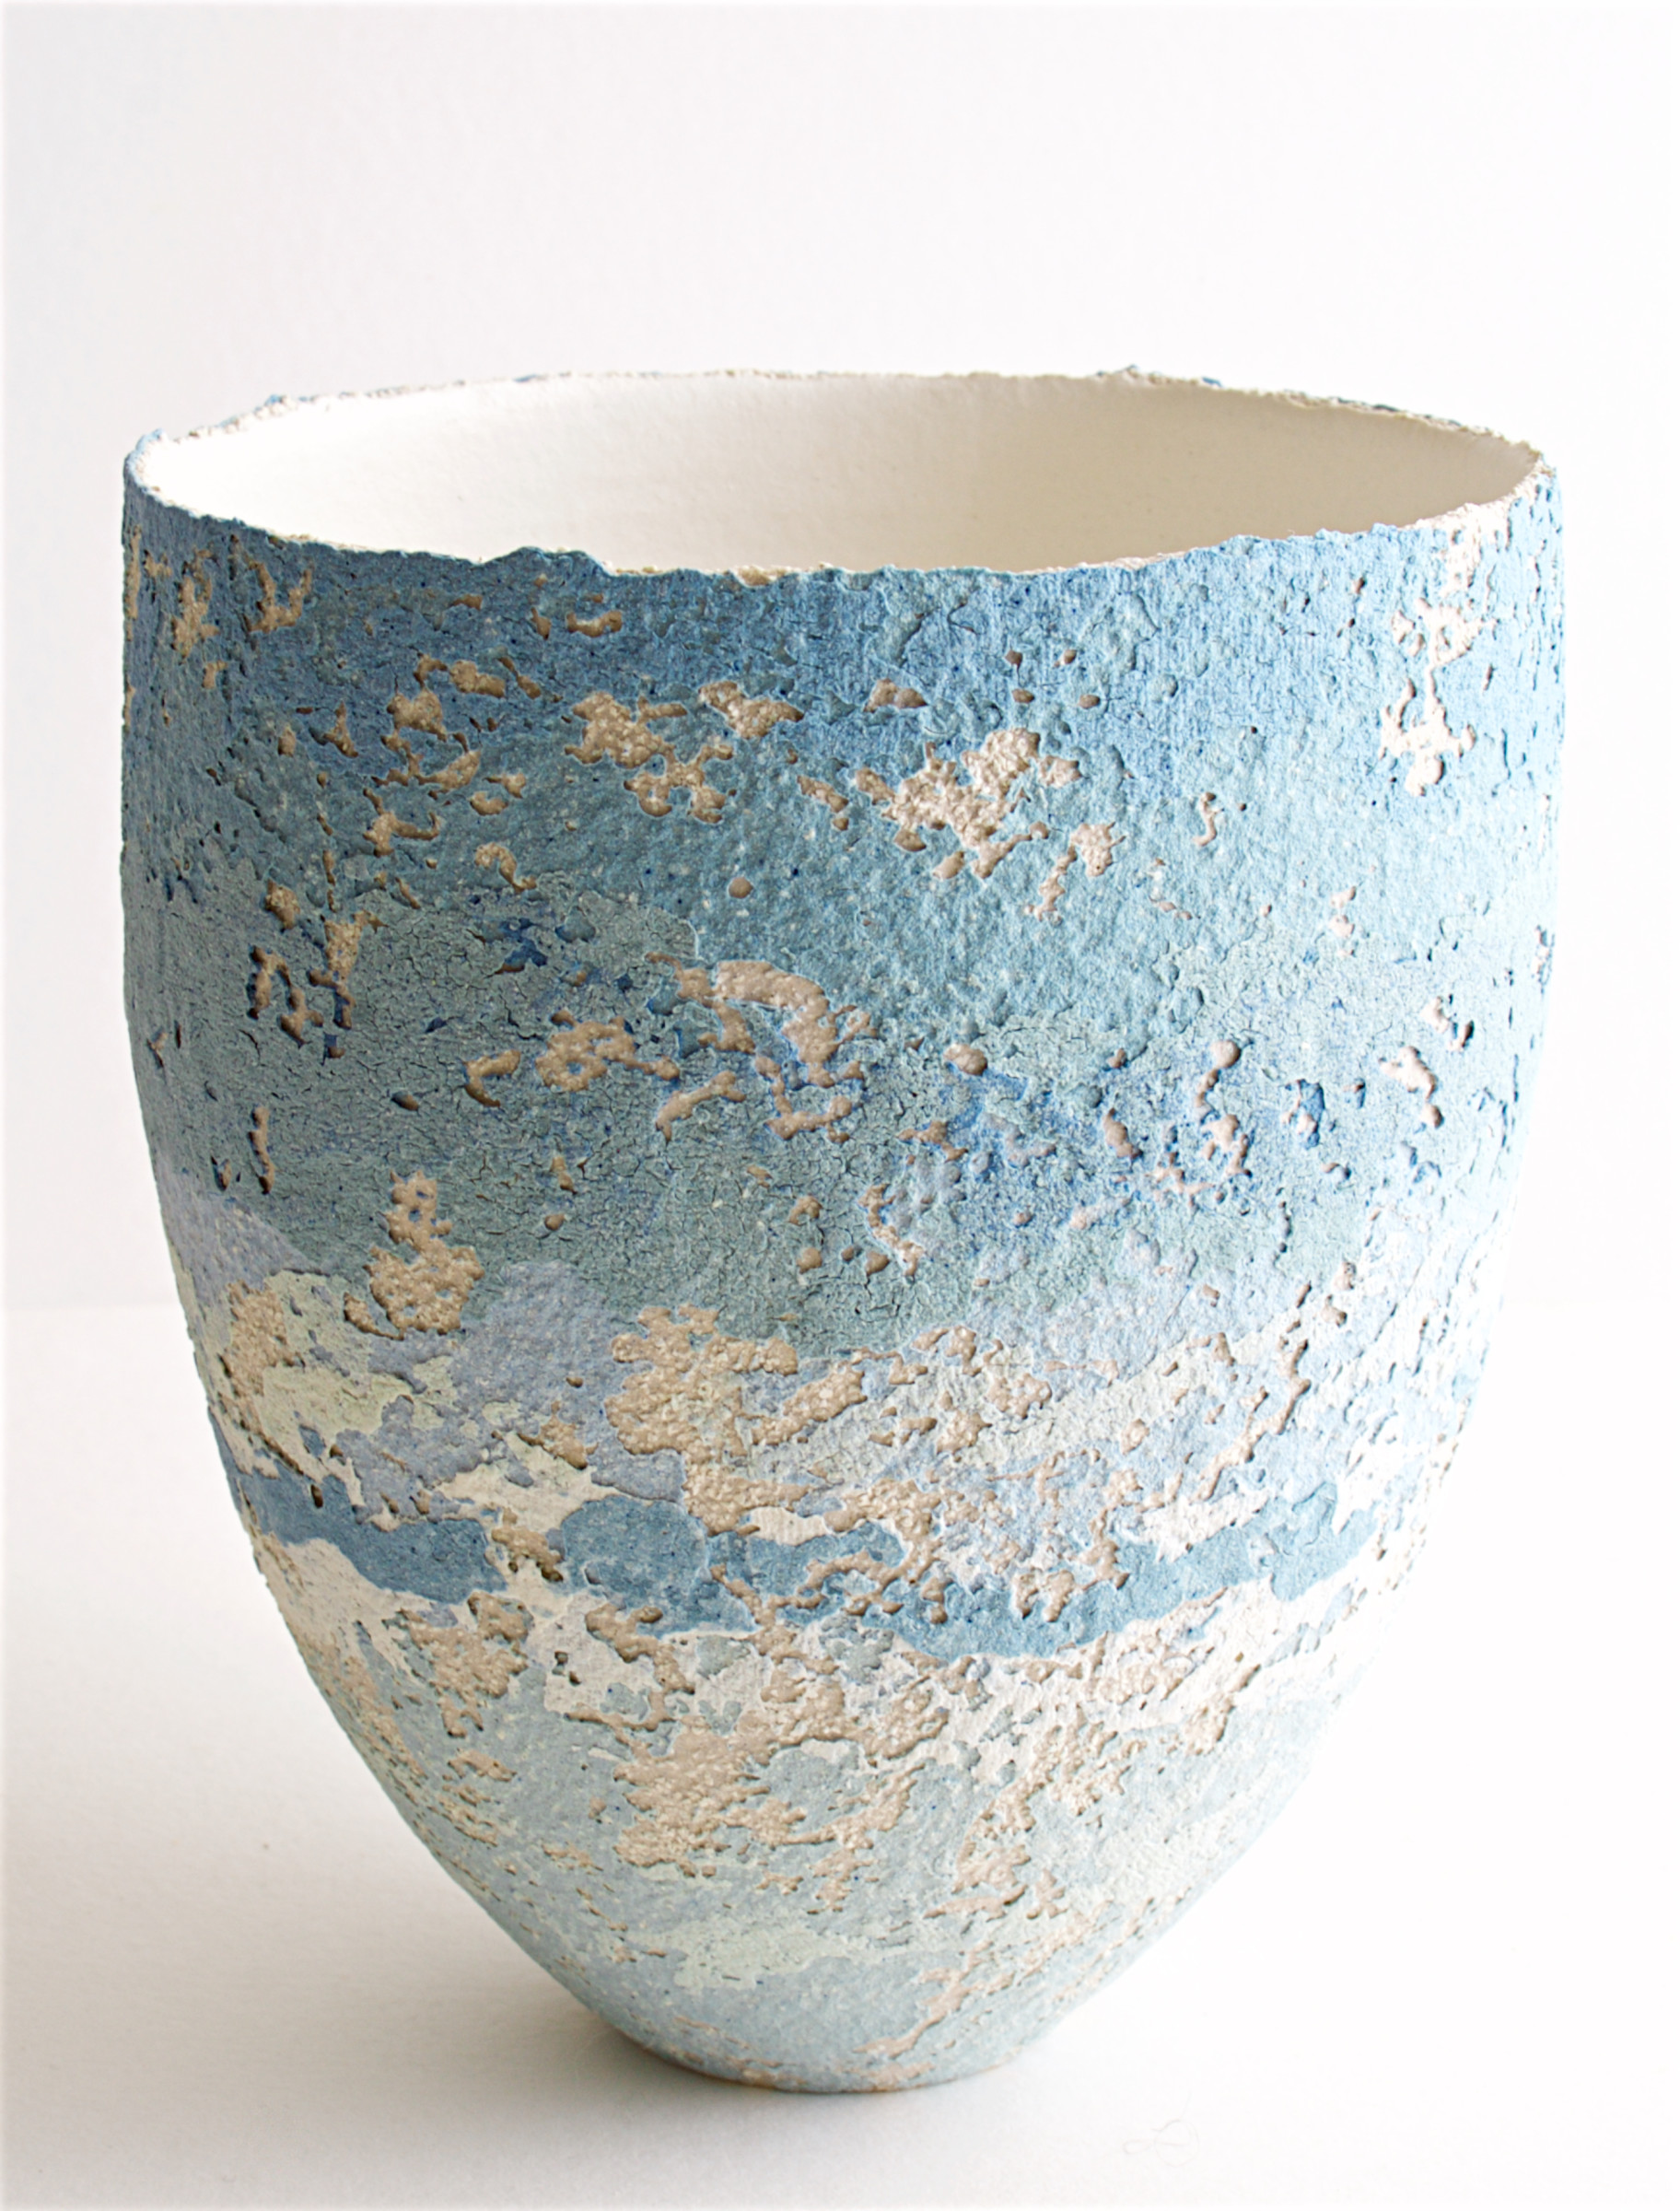 "<span class=""link fancybox-details-link""><a href=""/artists/79-clare-conrad/works/6928-clare-conrad-vessel-2020/"">View Detail Page</a></span><div class=""artist""><strong>Clare Conrad</strong></div> <div class=""title""><em>Vessel</em>, 2020</div> <div class=""medium"">Stoneware</div> <div class=""dimensions"">h. 12.5 cm</div><div class=""copyright_line"">Copyright The Artist</div>"